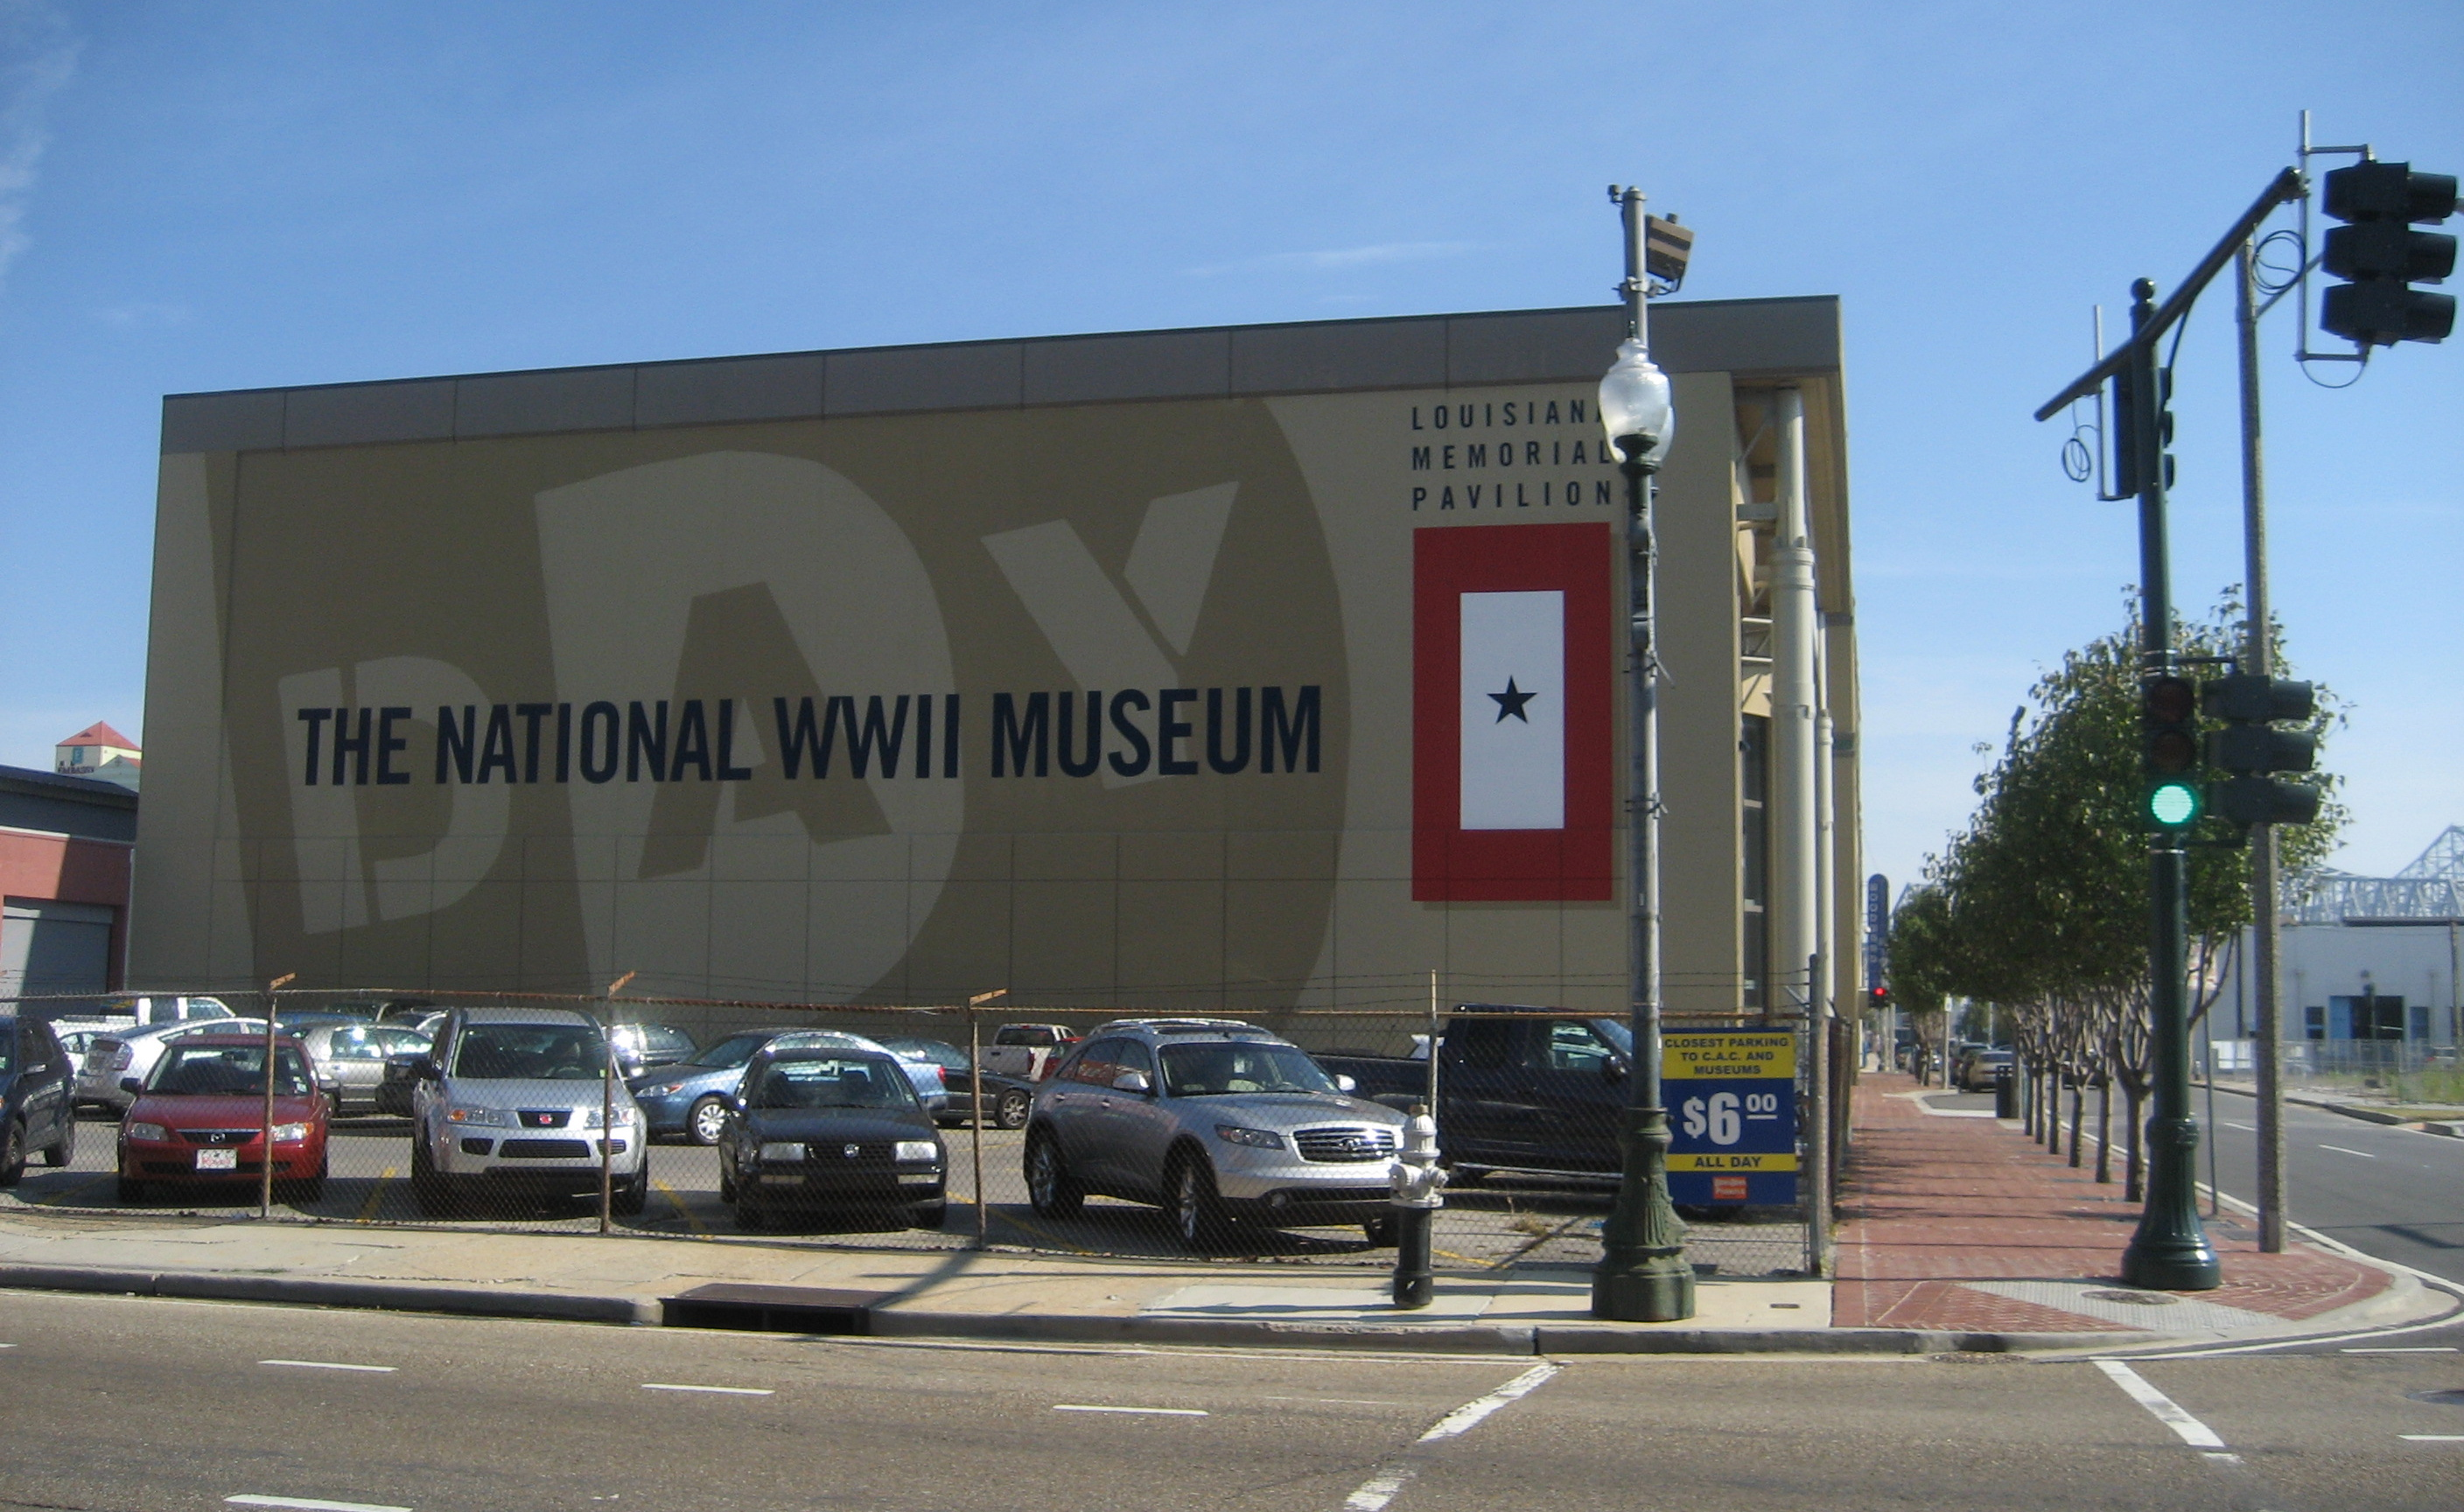 The building that started it all, the museum's Louisiana Memorial Pavilion.